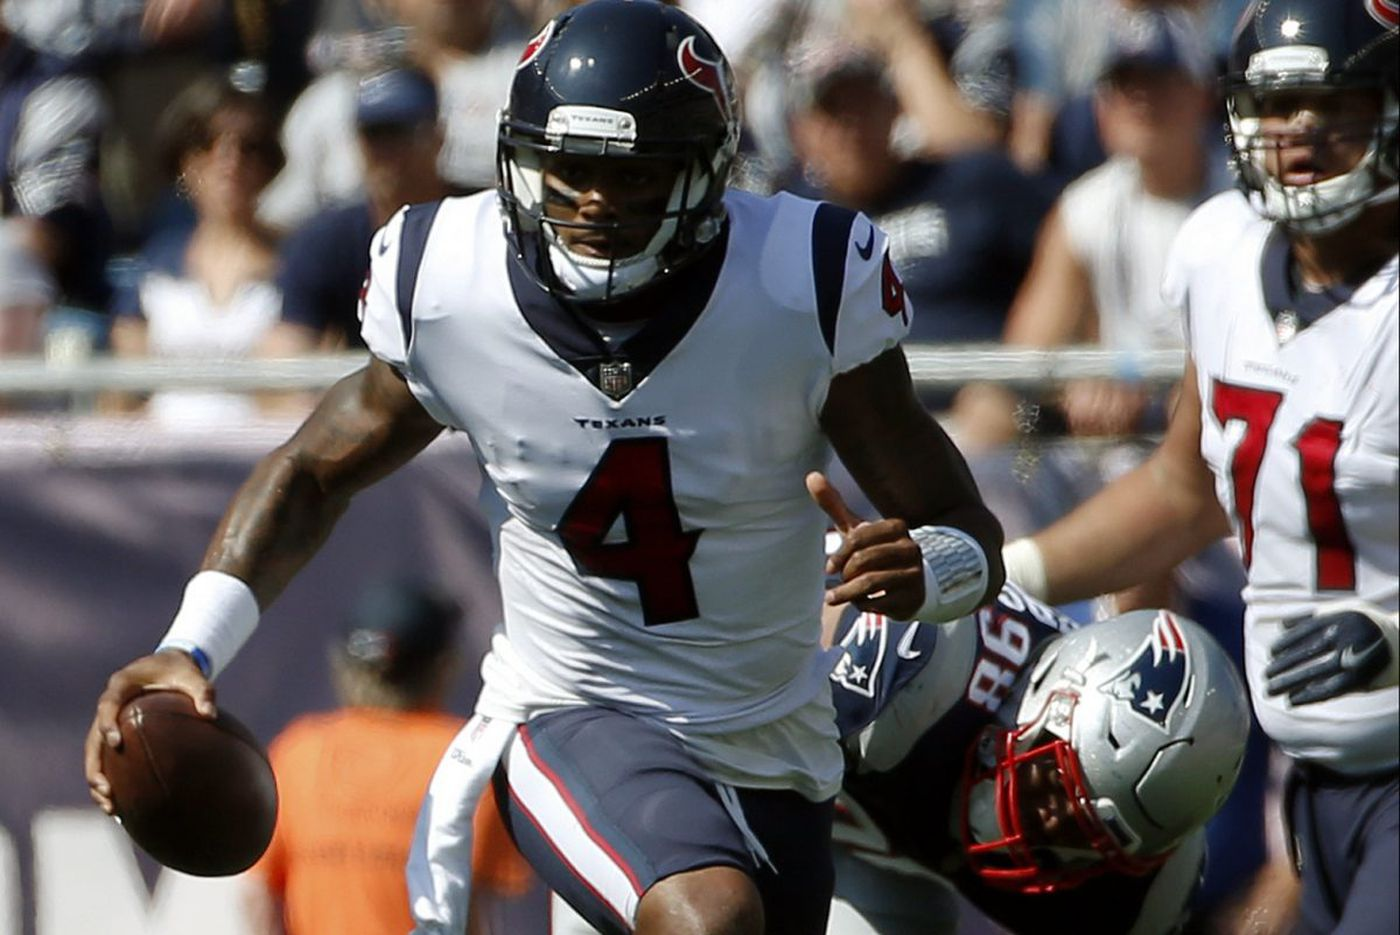 So Watt if they're banged up, take the Texans to the bank | Vegas Vic